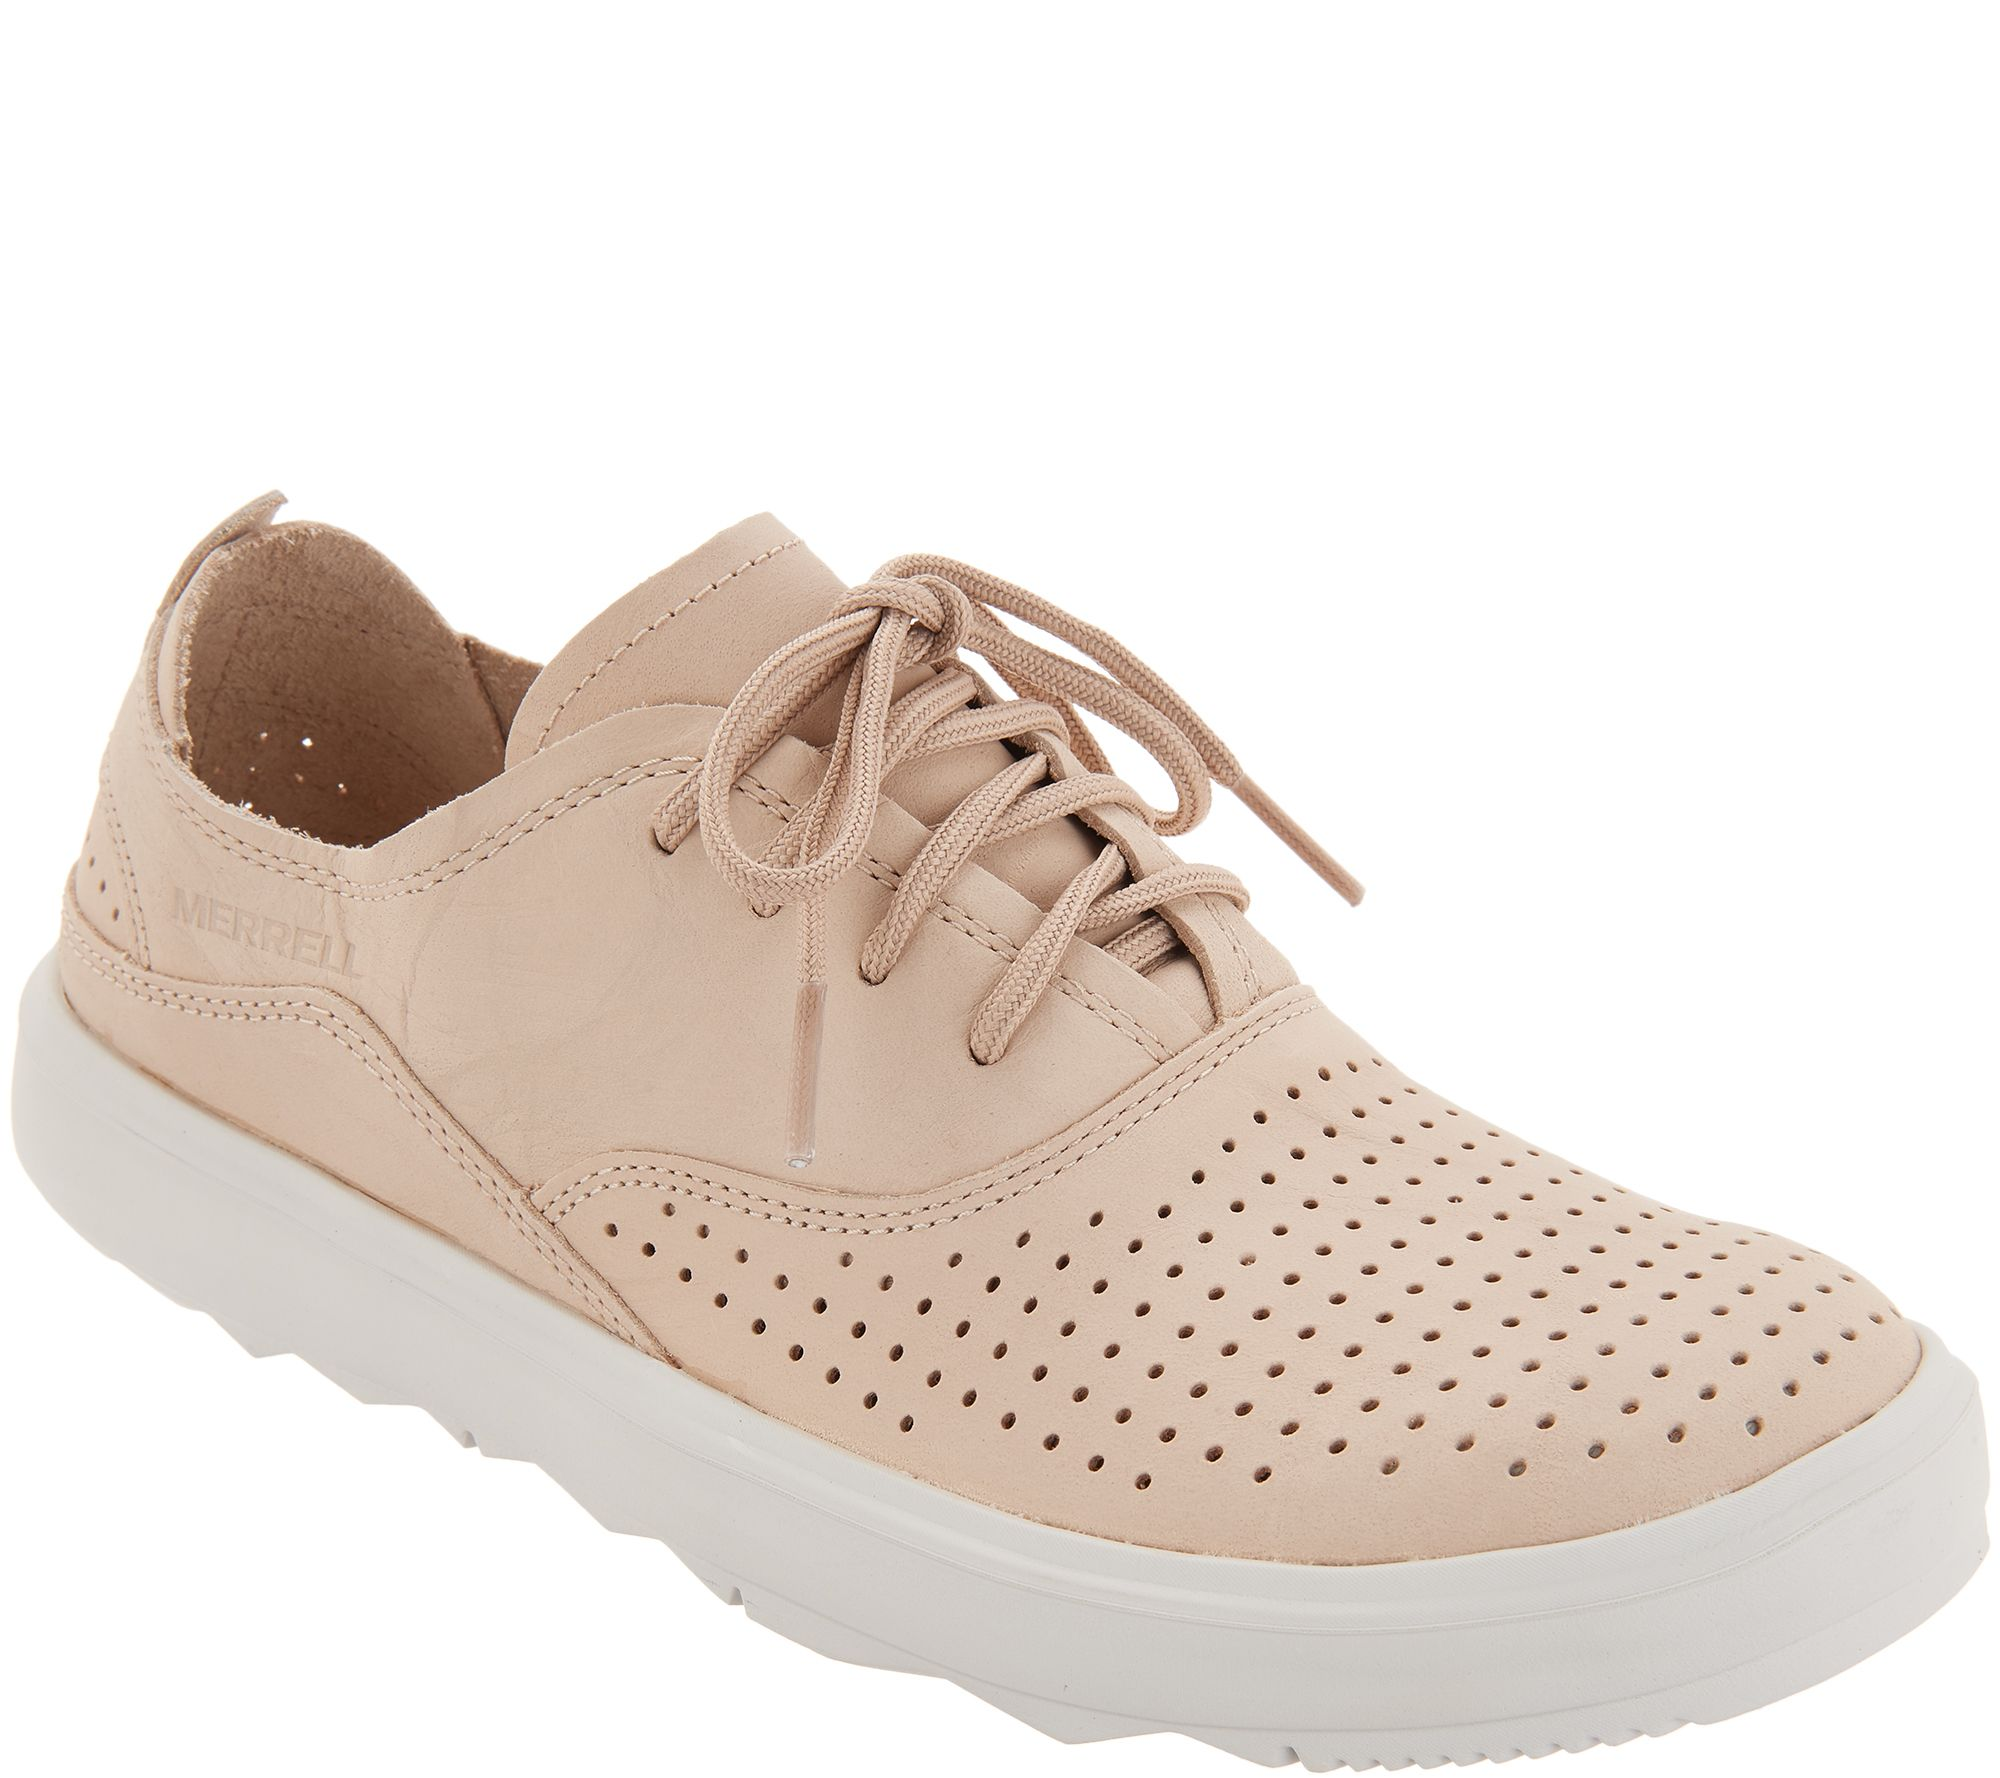 391b881544f Merrell Nubuck Lace-Up Sneakers - Around Town City Lace - Page 1 — QVC.com